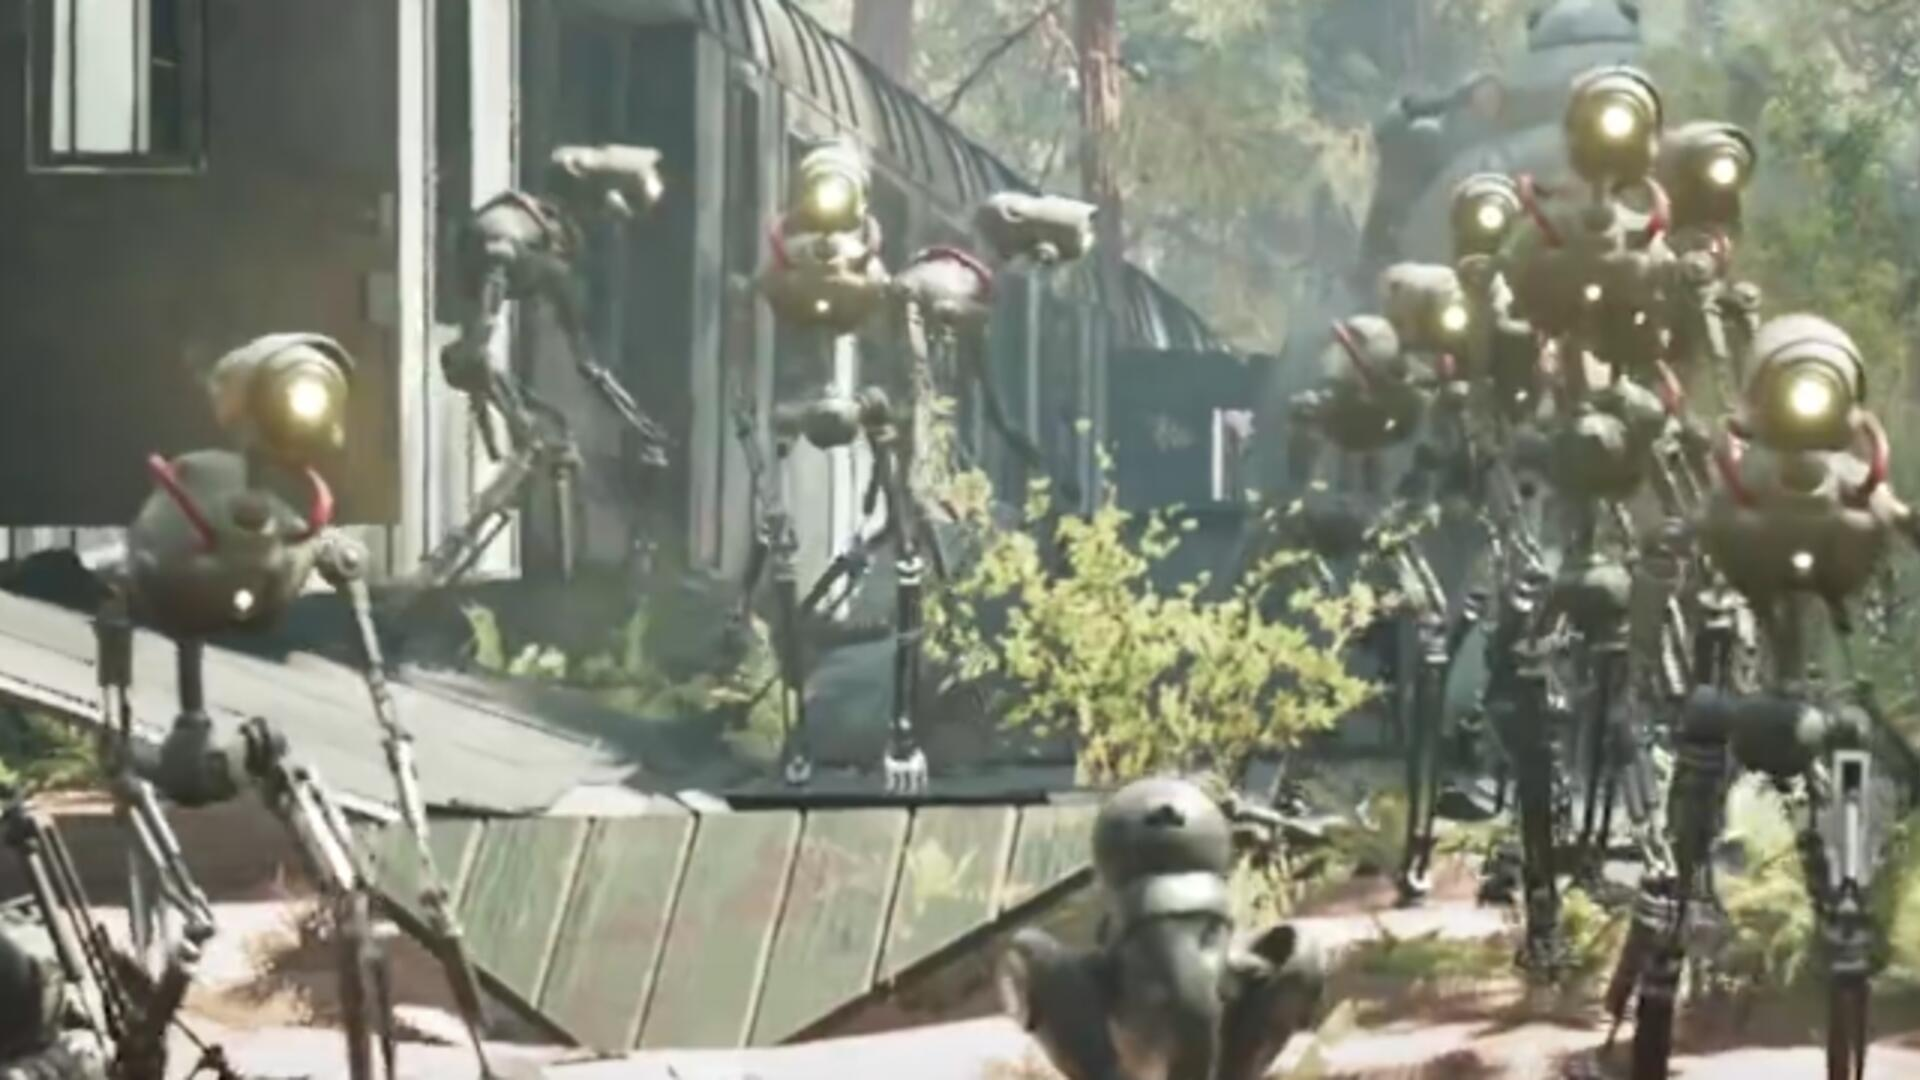 Atomic Heart Looks Like a Demented Mix of Bioshock and Fallout